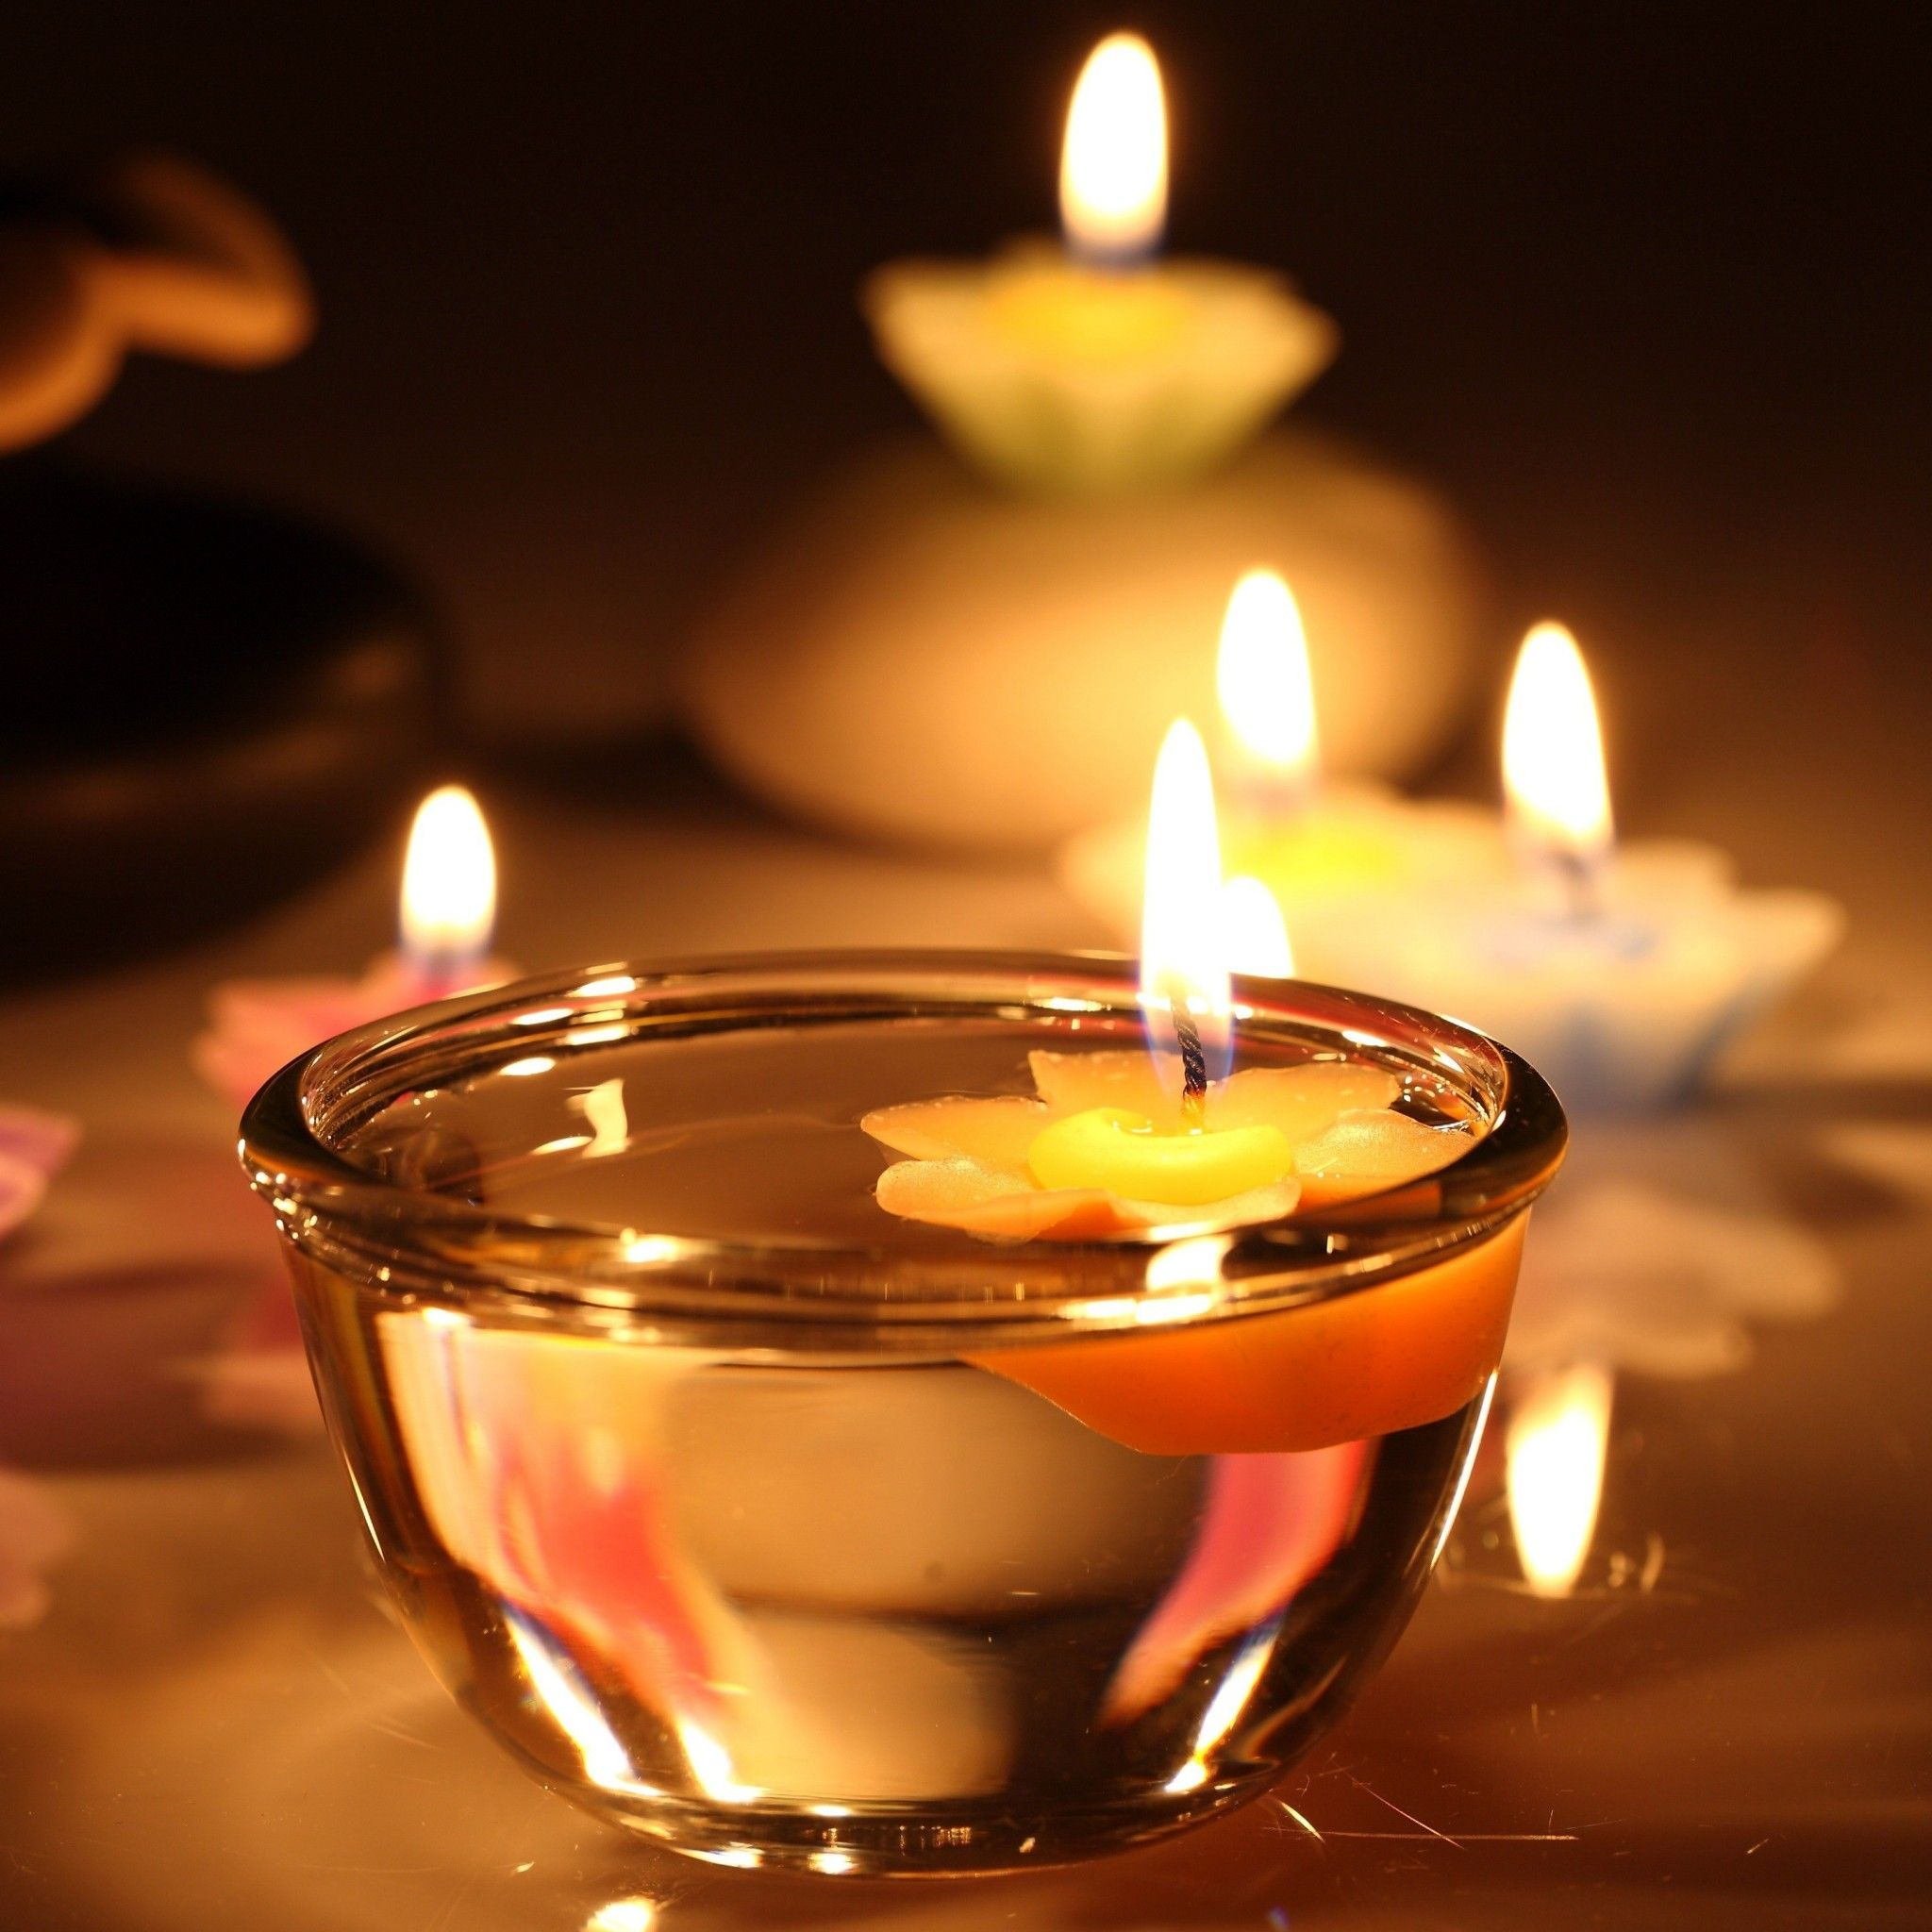 Candle Decoration Tap To See More Light In The Dark Wallpapers Mibile9 Candle Night Beautiful Candles Romantic Candles Night